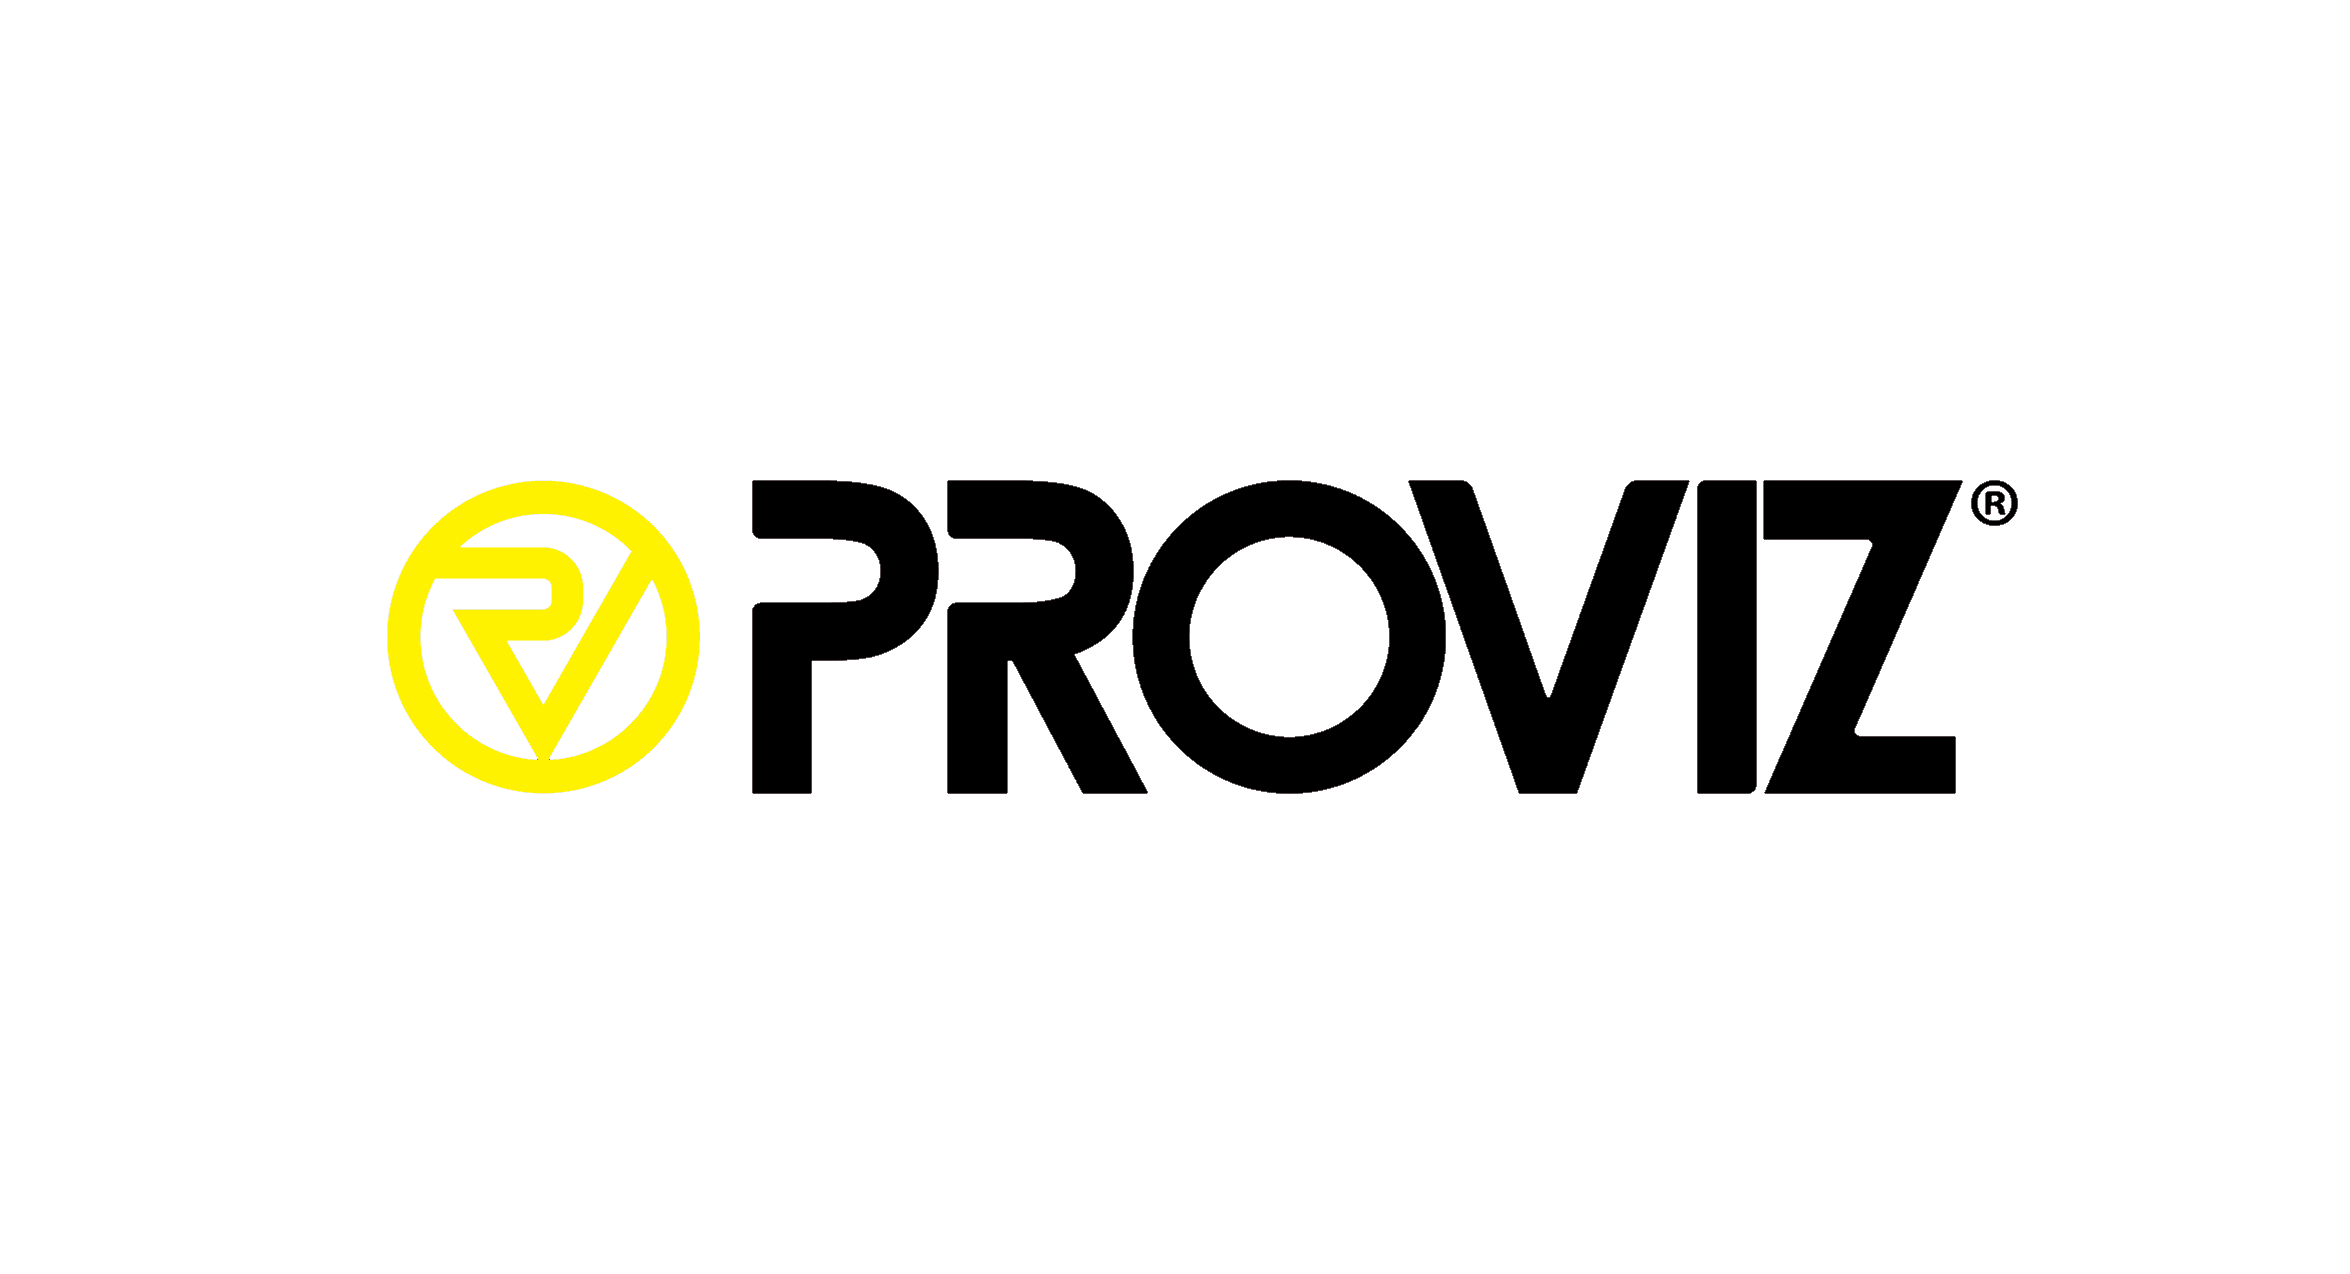 Proviz Coupons & Promo Codes